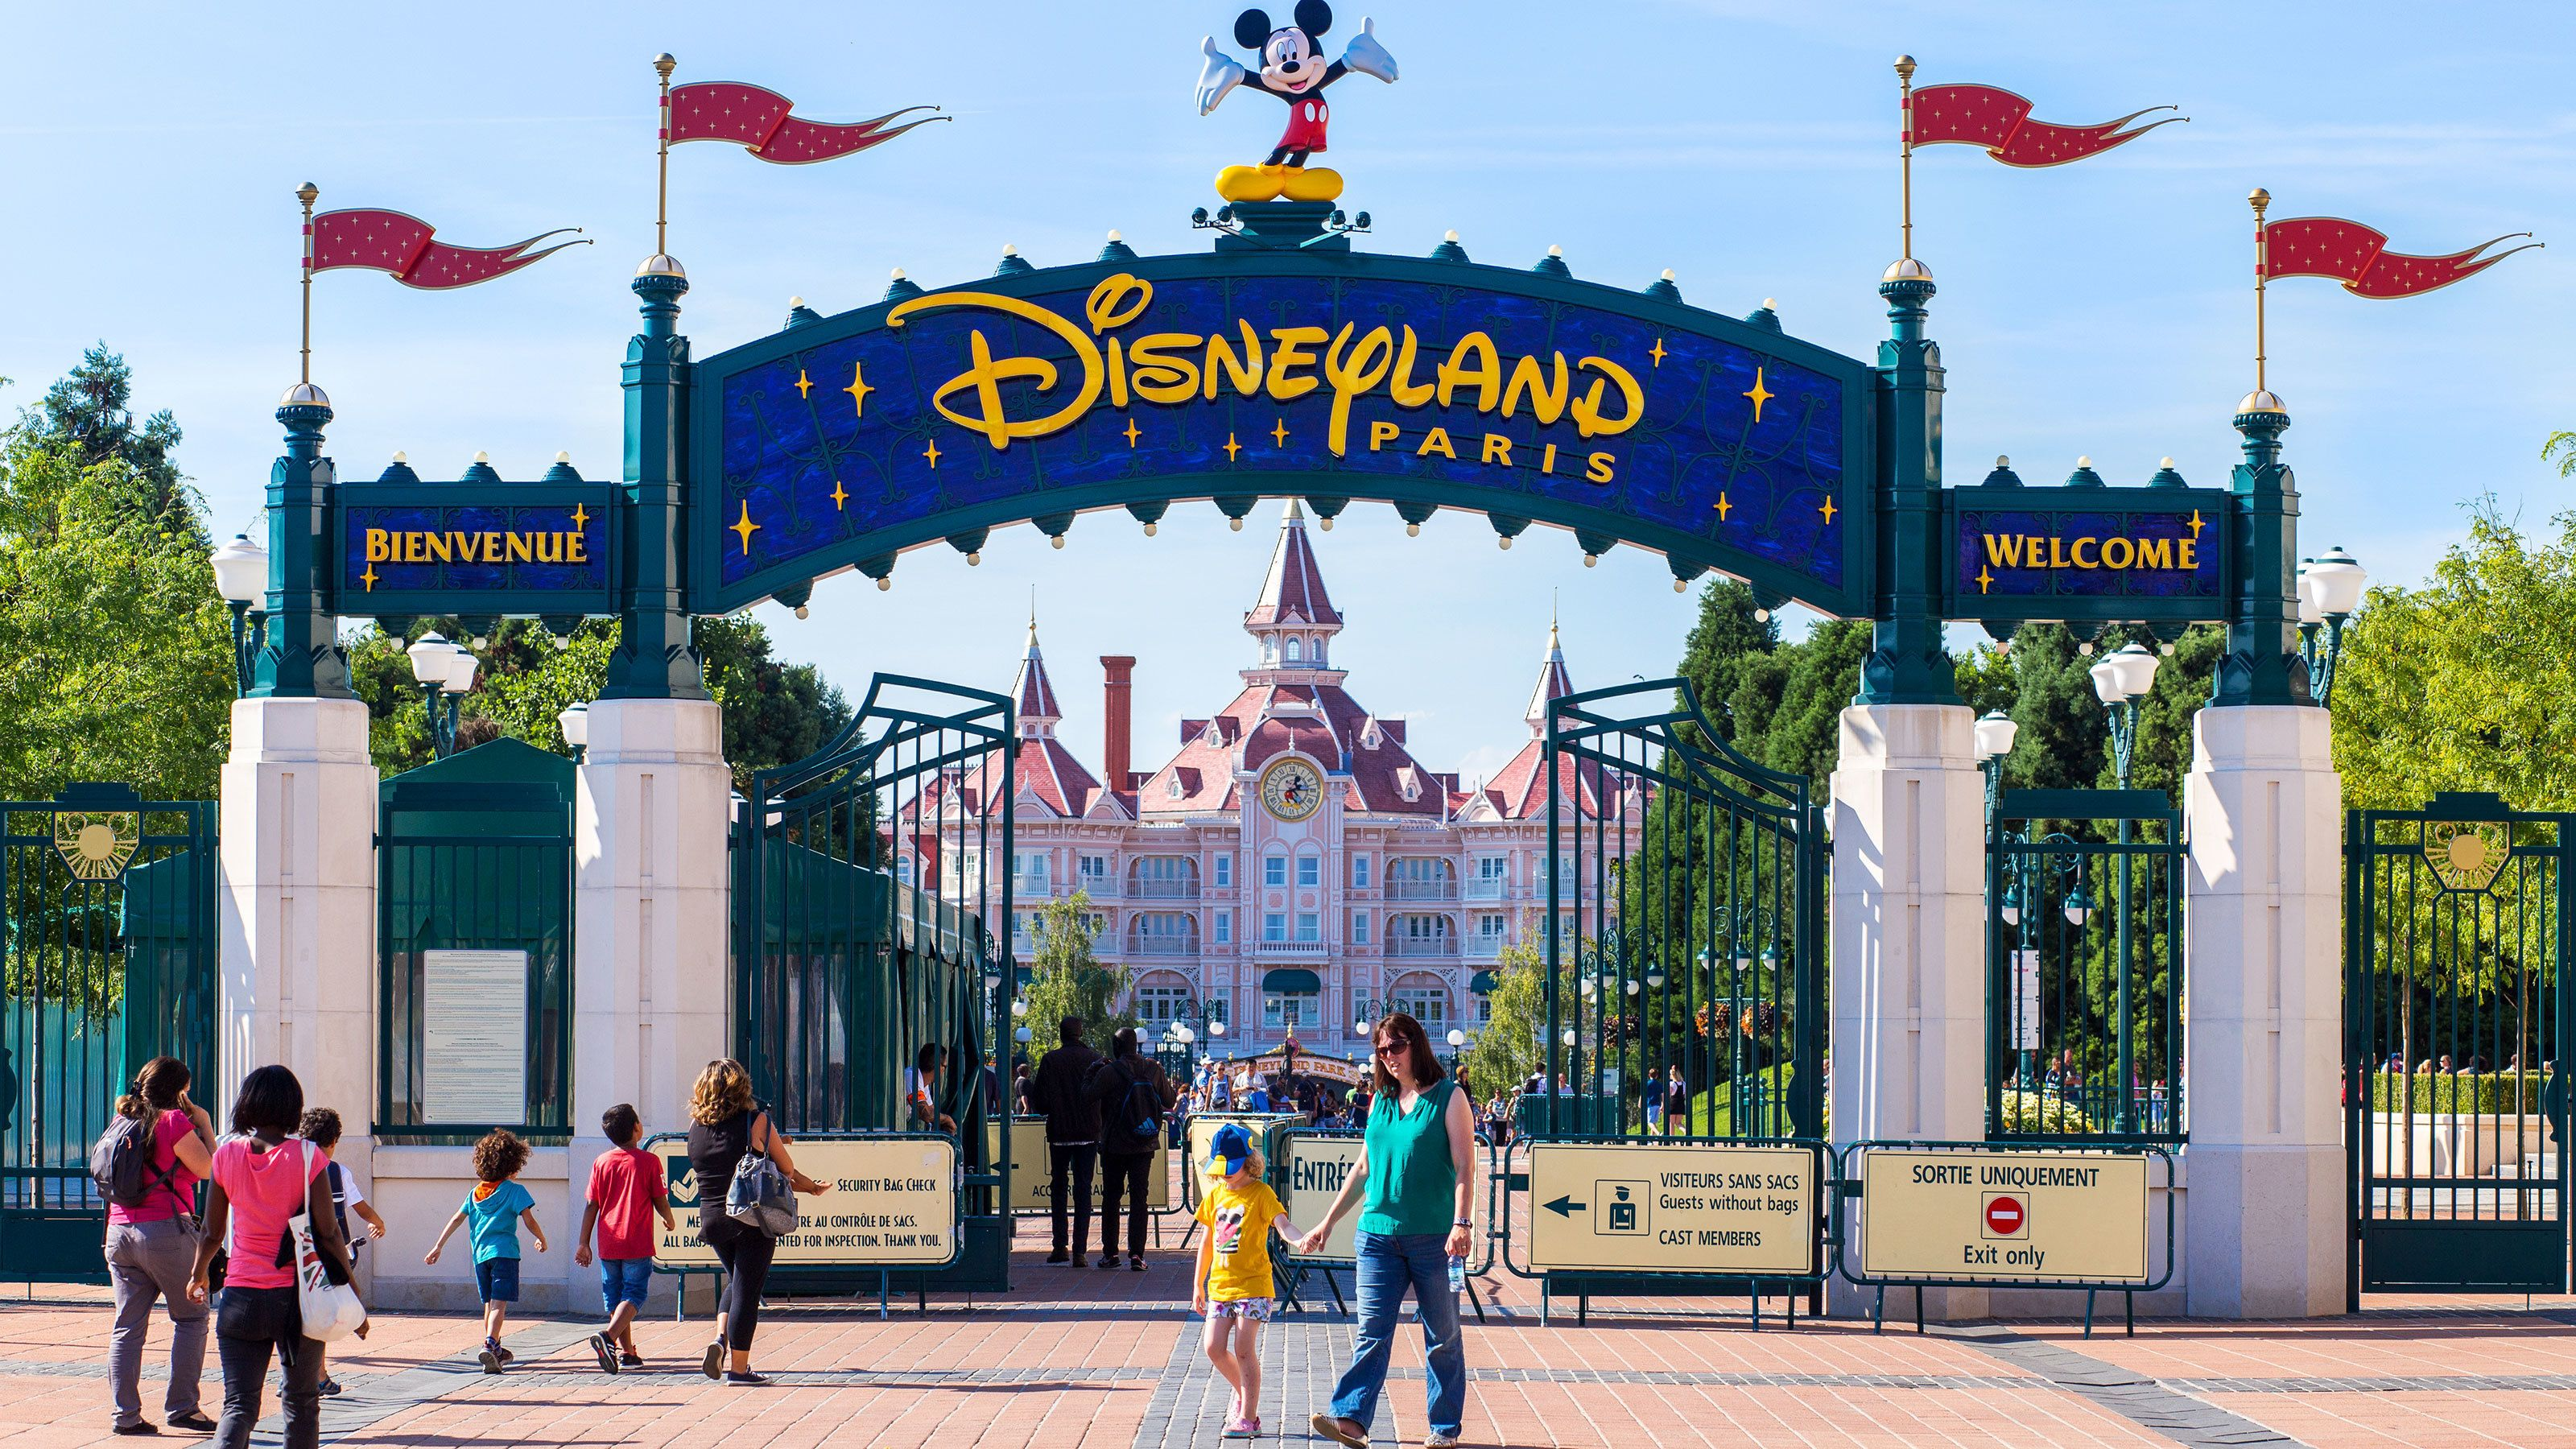 Disneyland Paris Tickets With Train Transportation From Paris